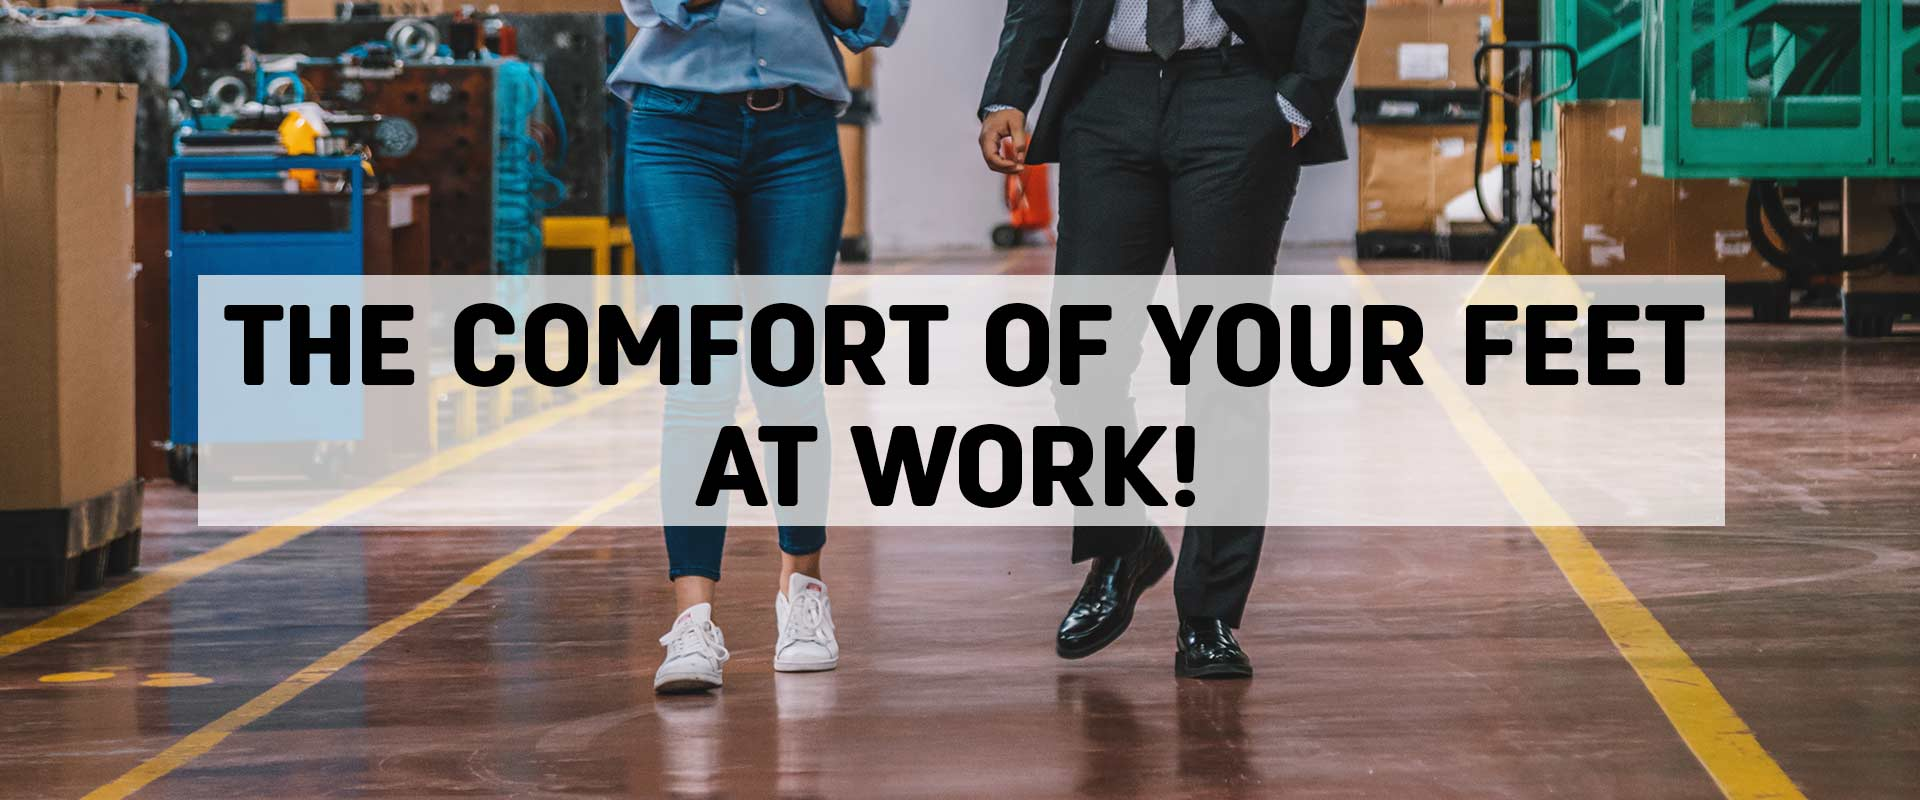 Confort of your feet at work thanks to gel insoles